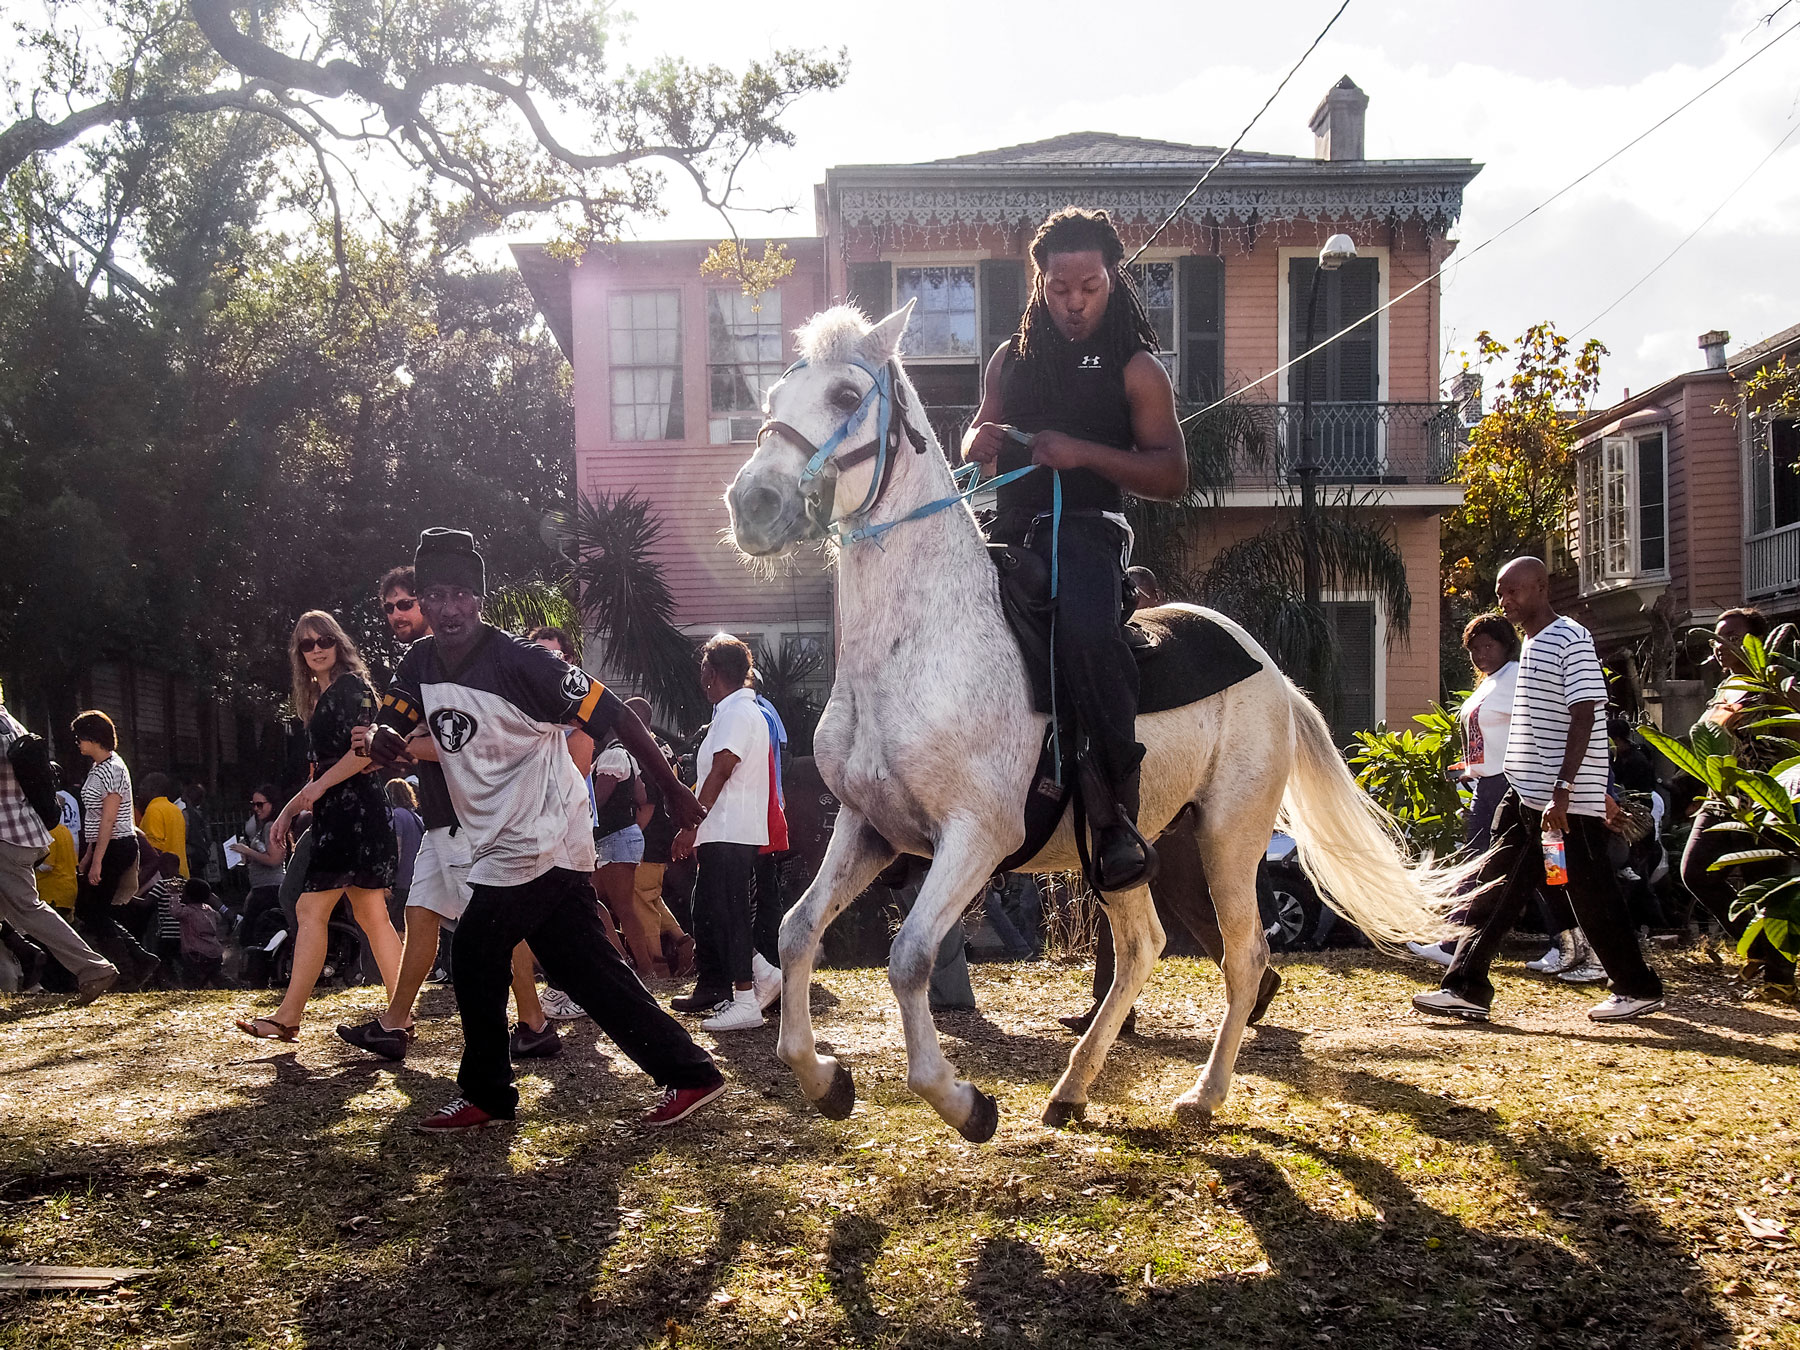 New Orleans, Louisiana. 2012. A Second Line parade: a local African American tradition where brass bands — known as the first line — march in the streets and are joined by members of the public — called the second liners.